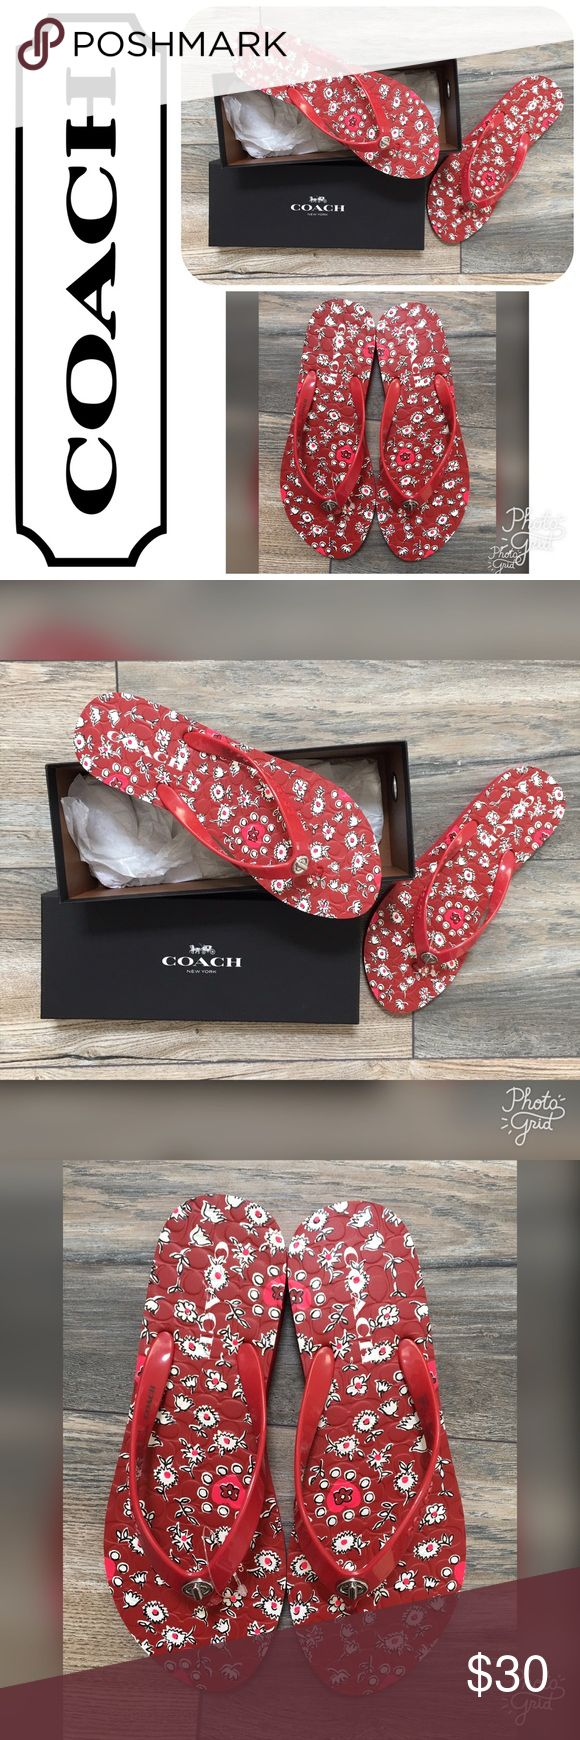 NWT COACH Abbigail Floral Rubber Red Flip Flops 8M These are a pair of NEW WITH TAGS COACH Abbigail Floral Rubber Red Flip Flops in a size 8M.  They are originally $60! Coach Shoes Sandals